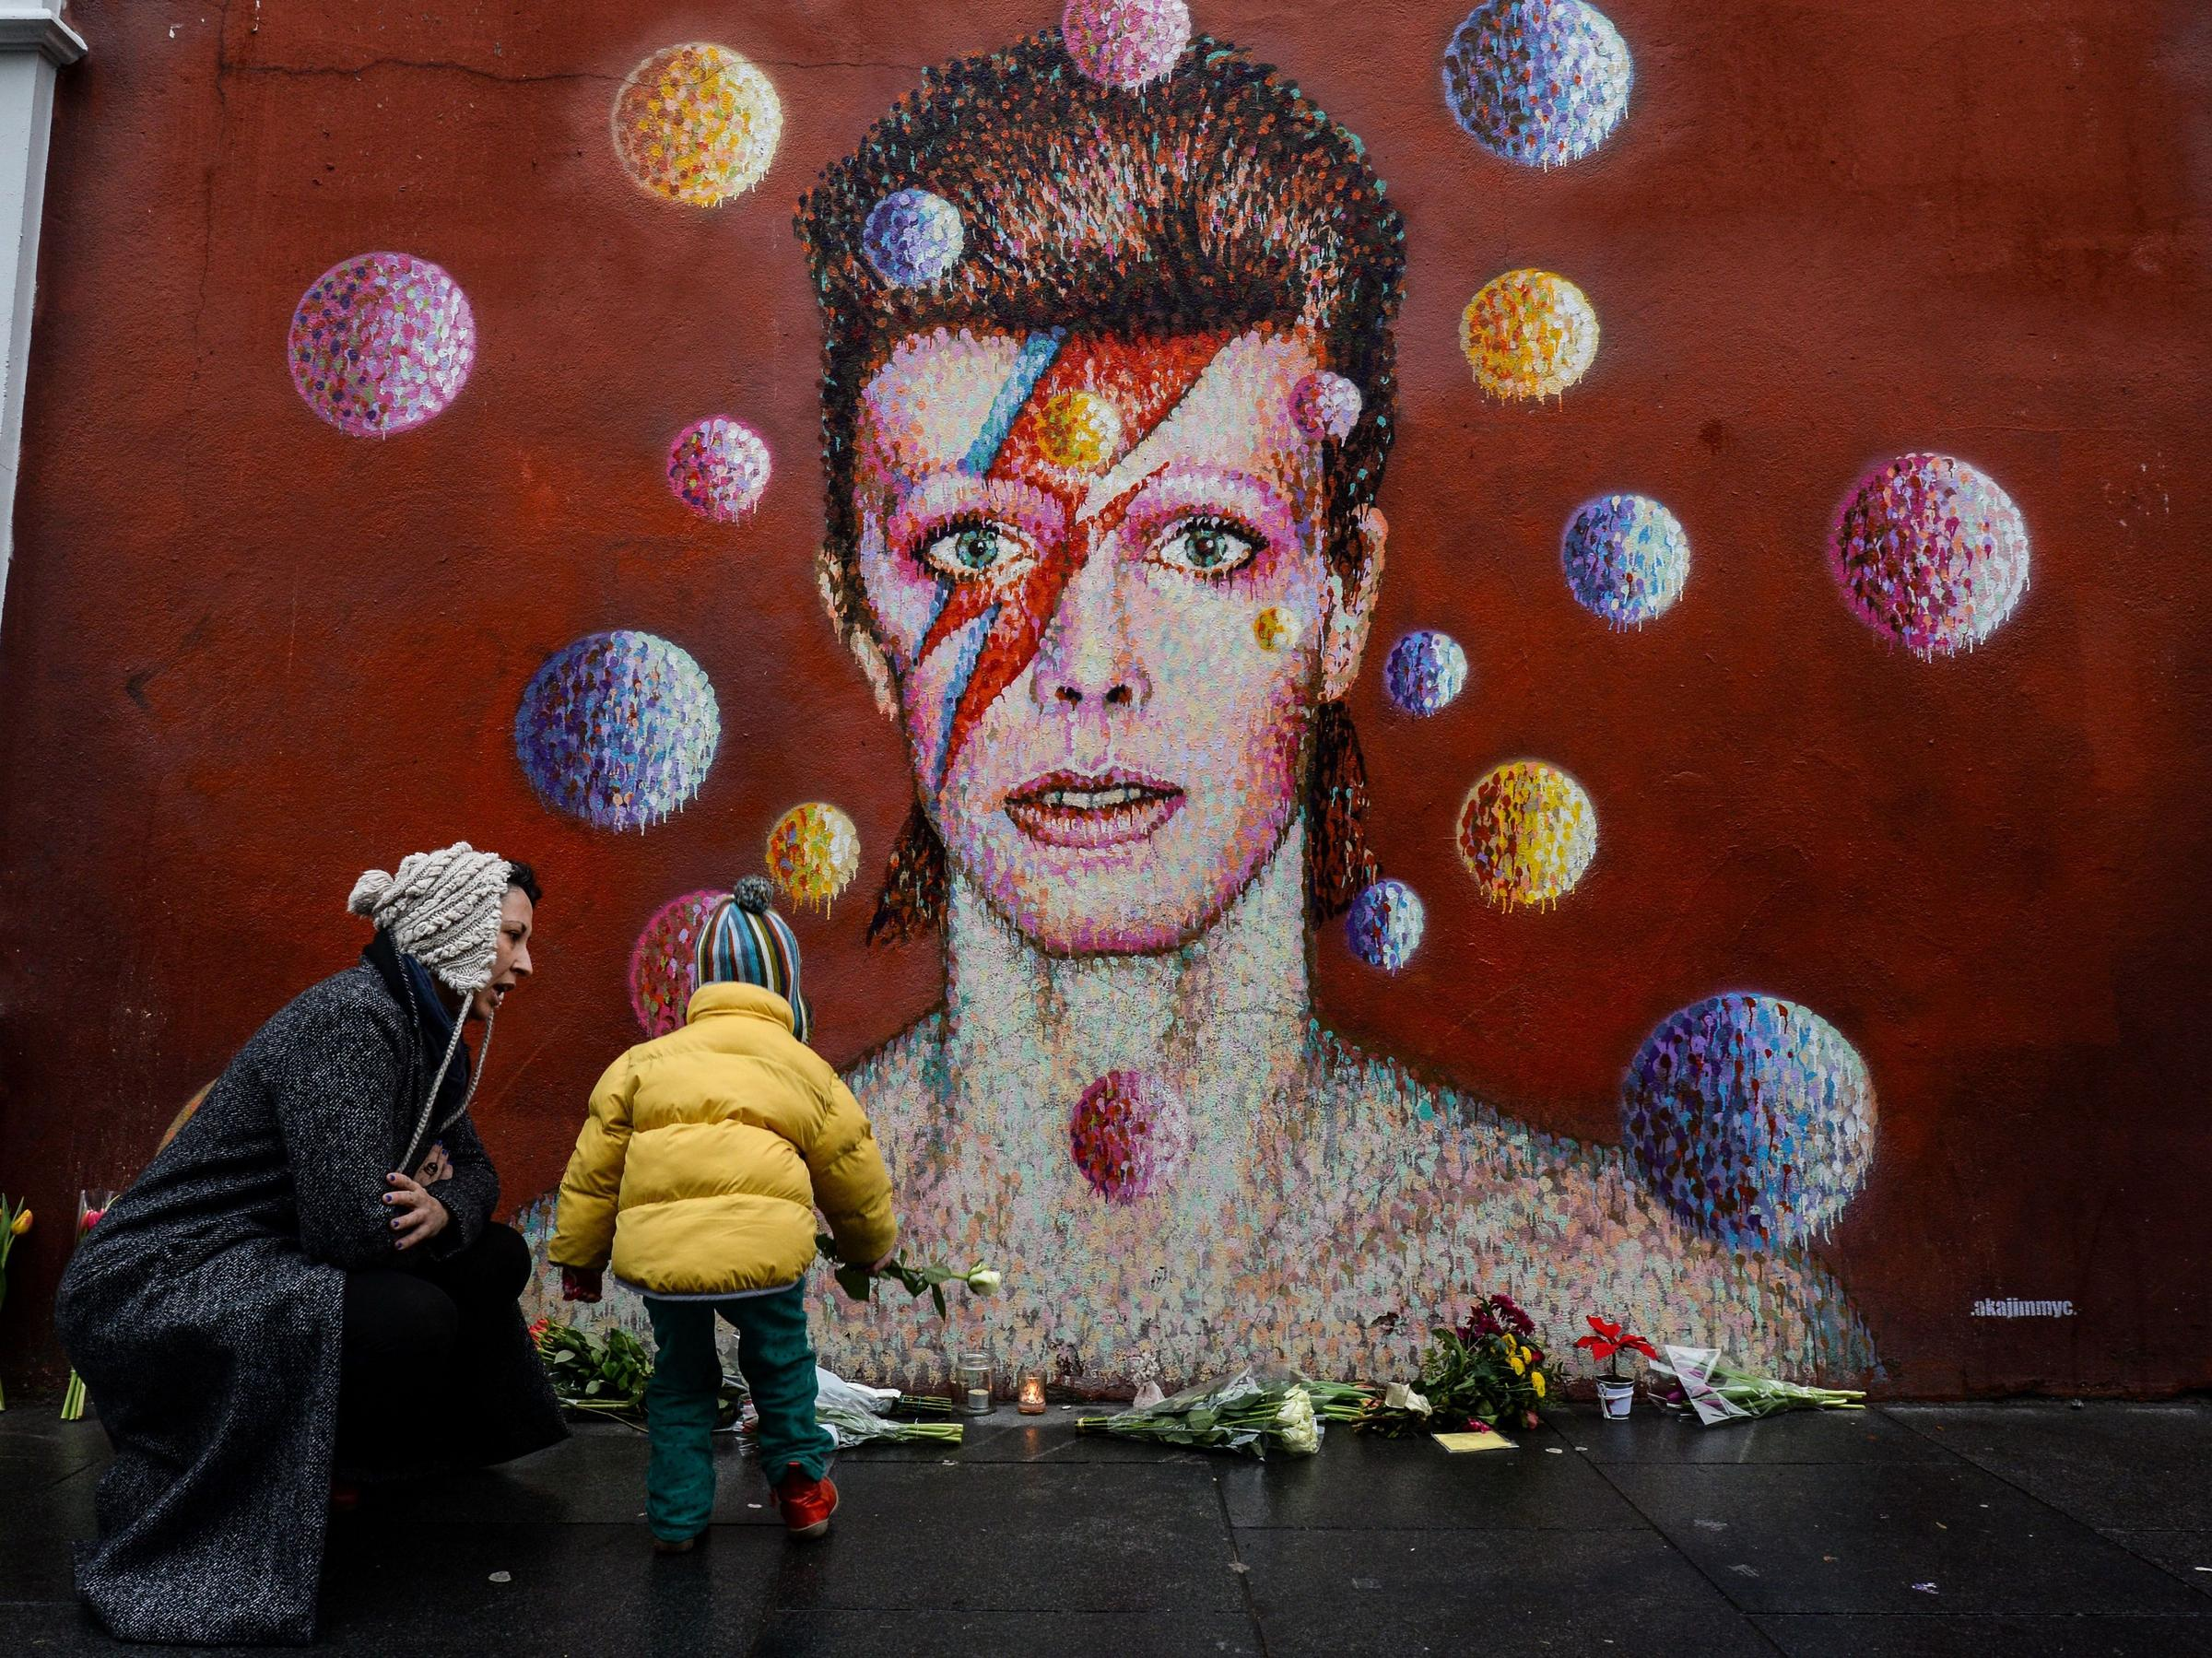 David Bowie fans flock to social media to pay their respects